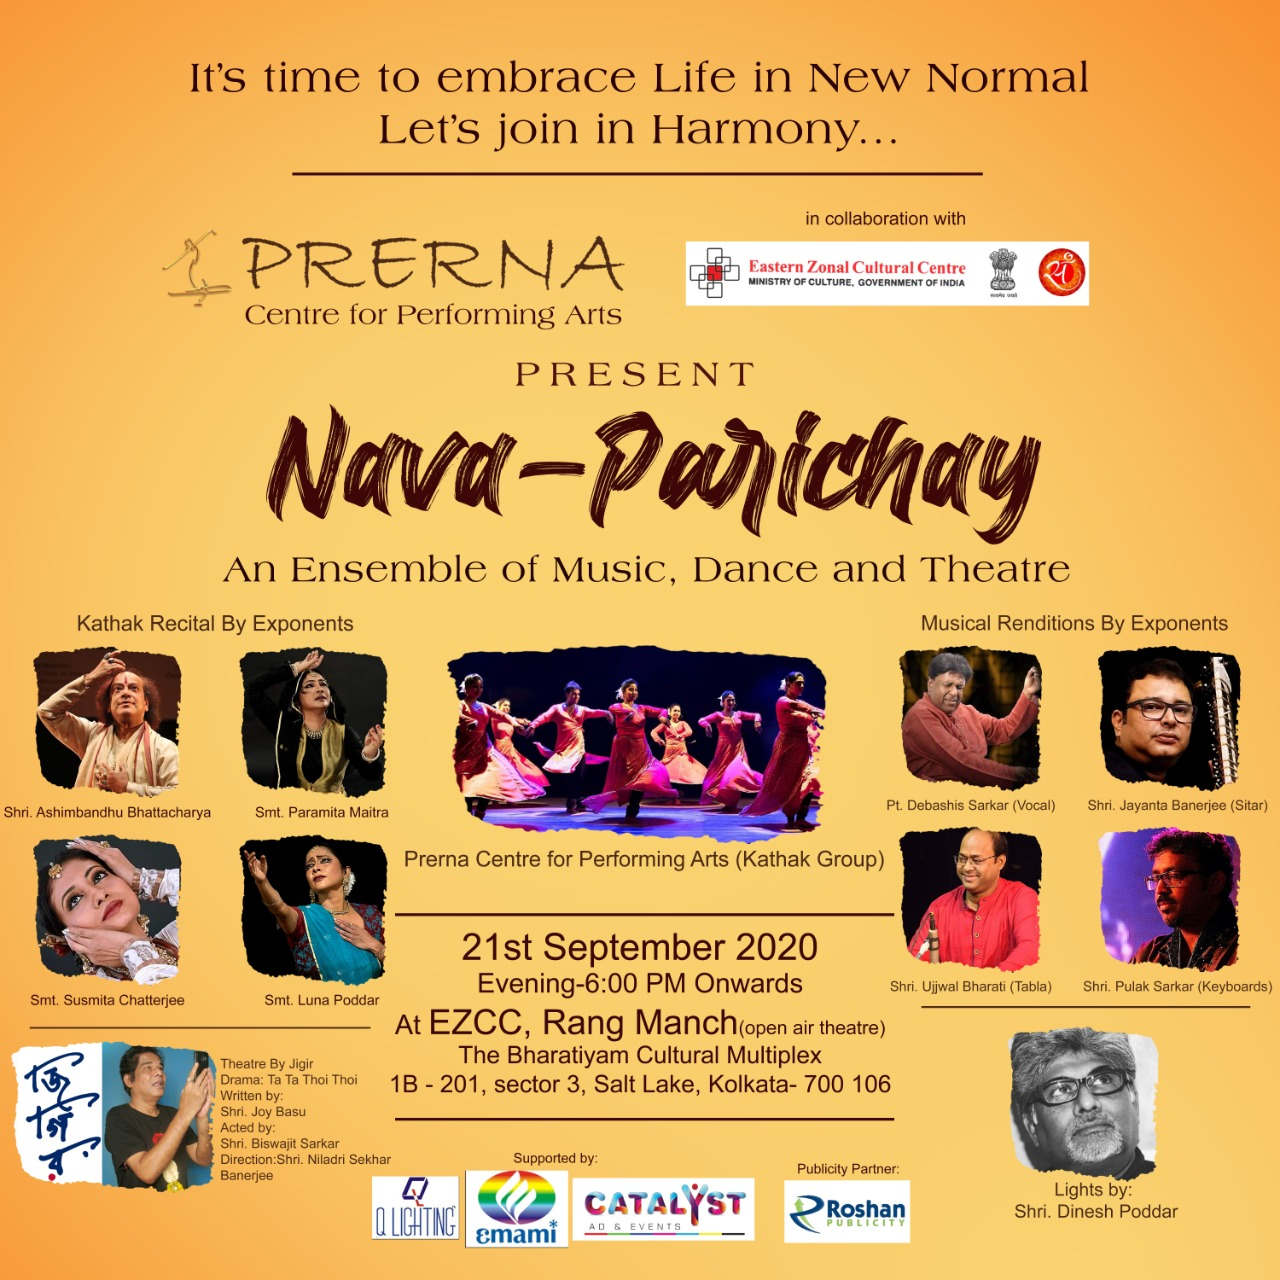 Nava-Parichay an auspicious show on 21st September 2020